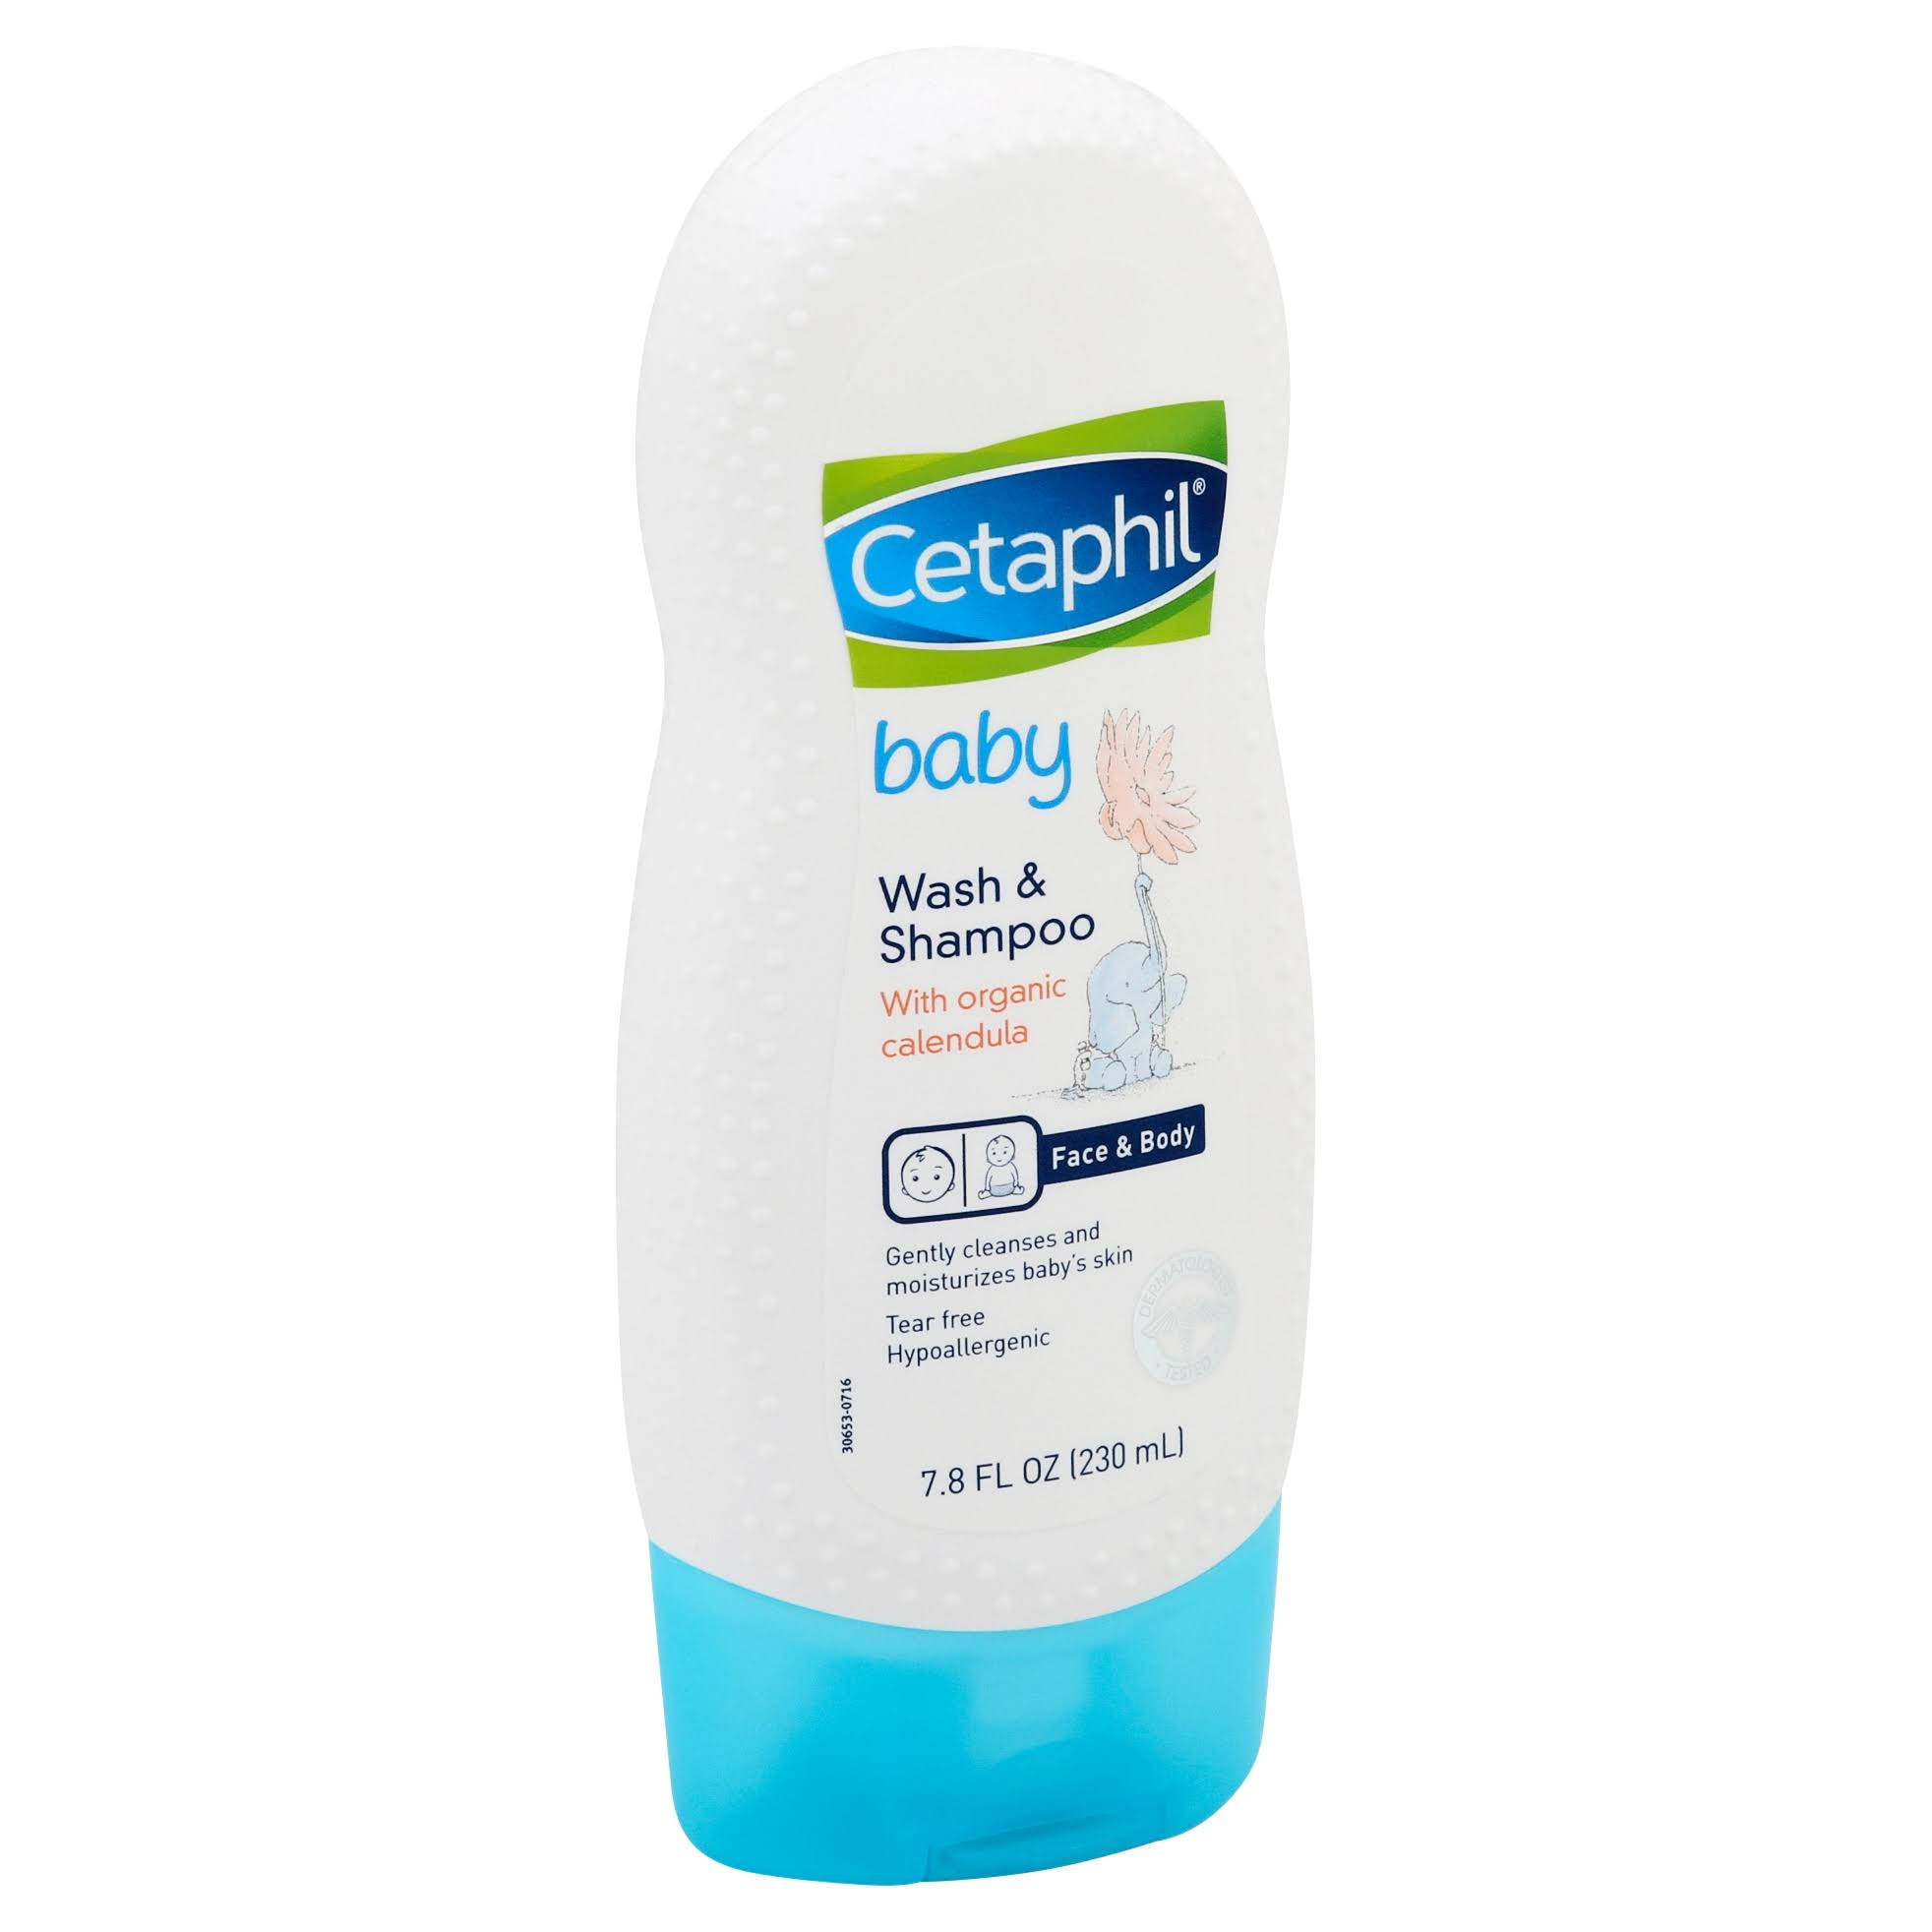 Cetaphil Baby Wash and Shampoo - with Organic Calendula, 230ml